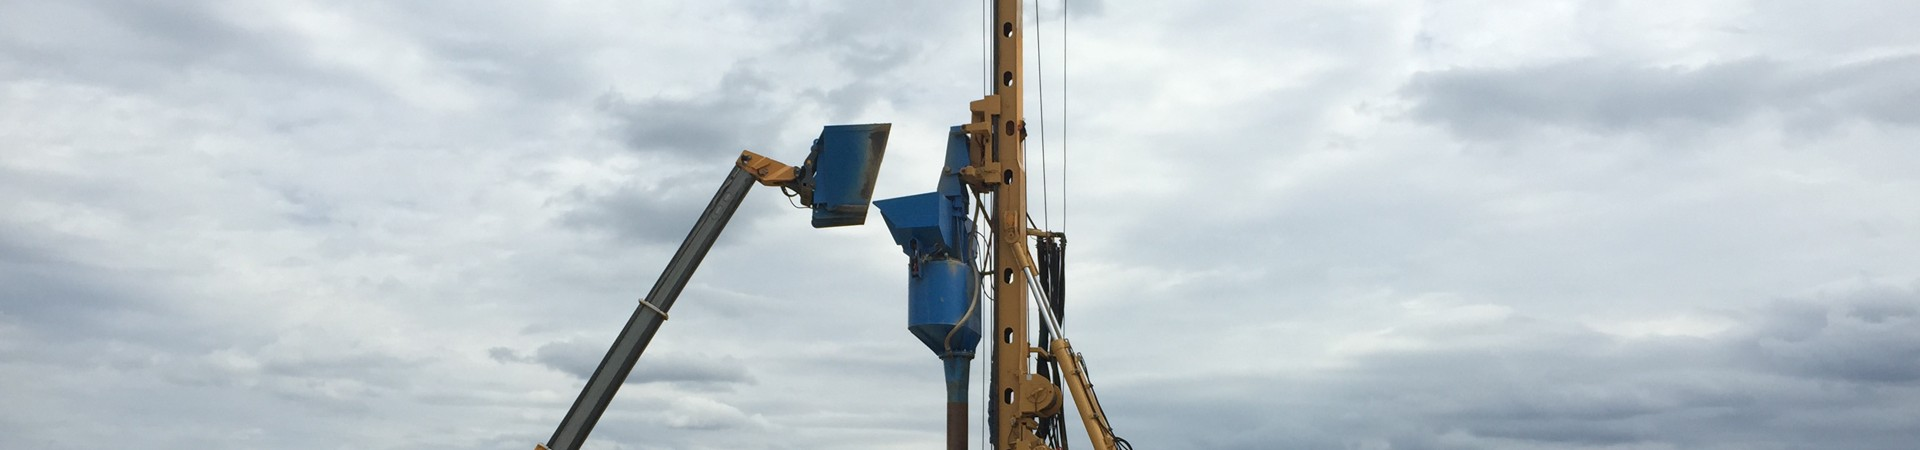 Drill rig based attachments